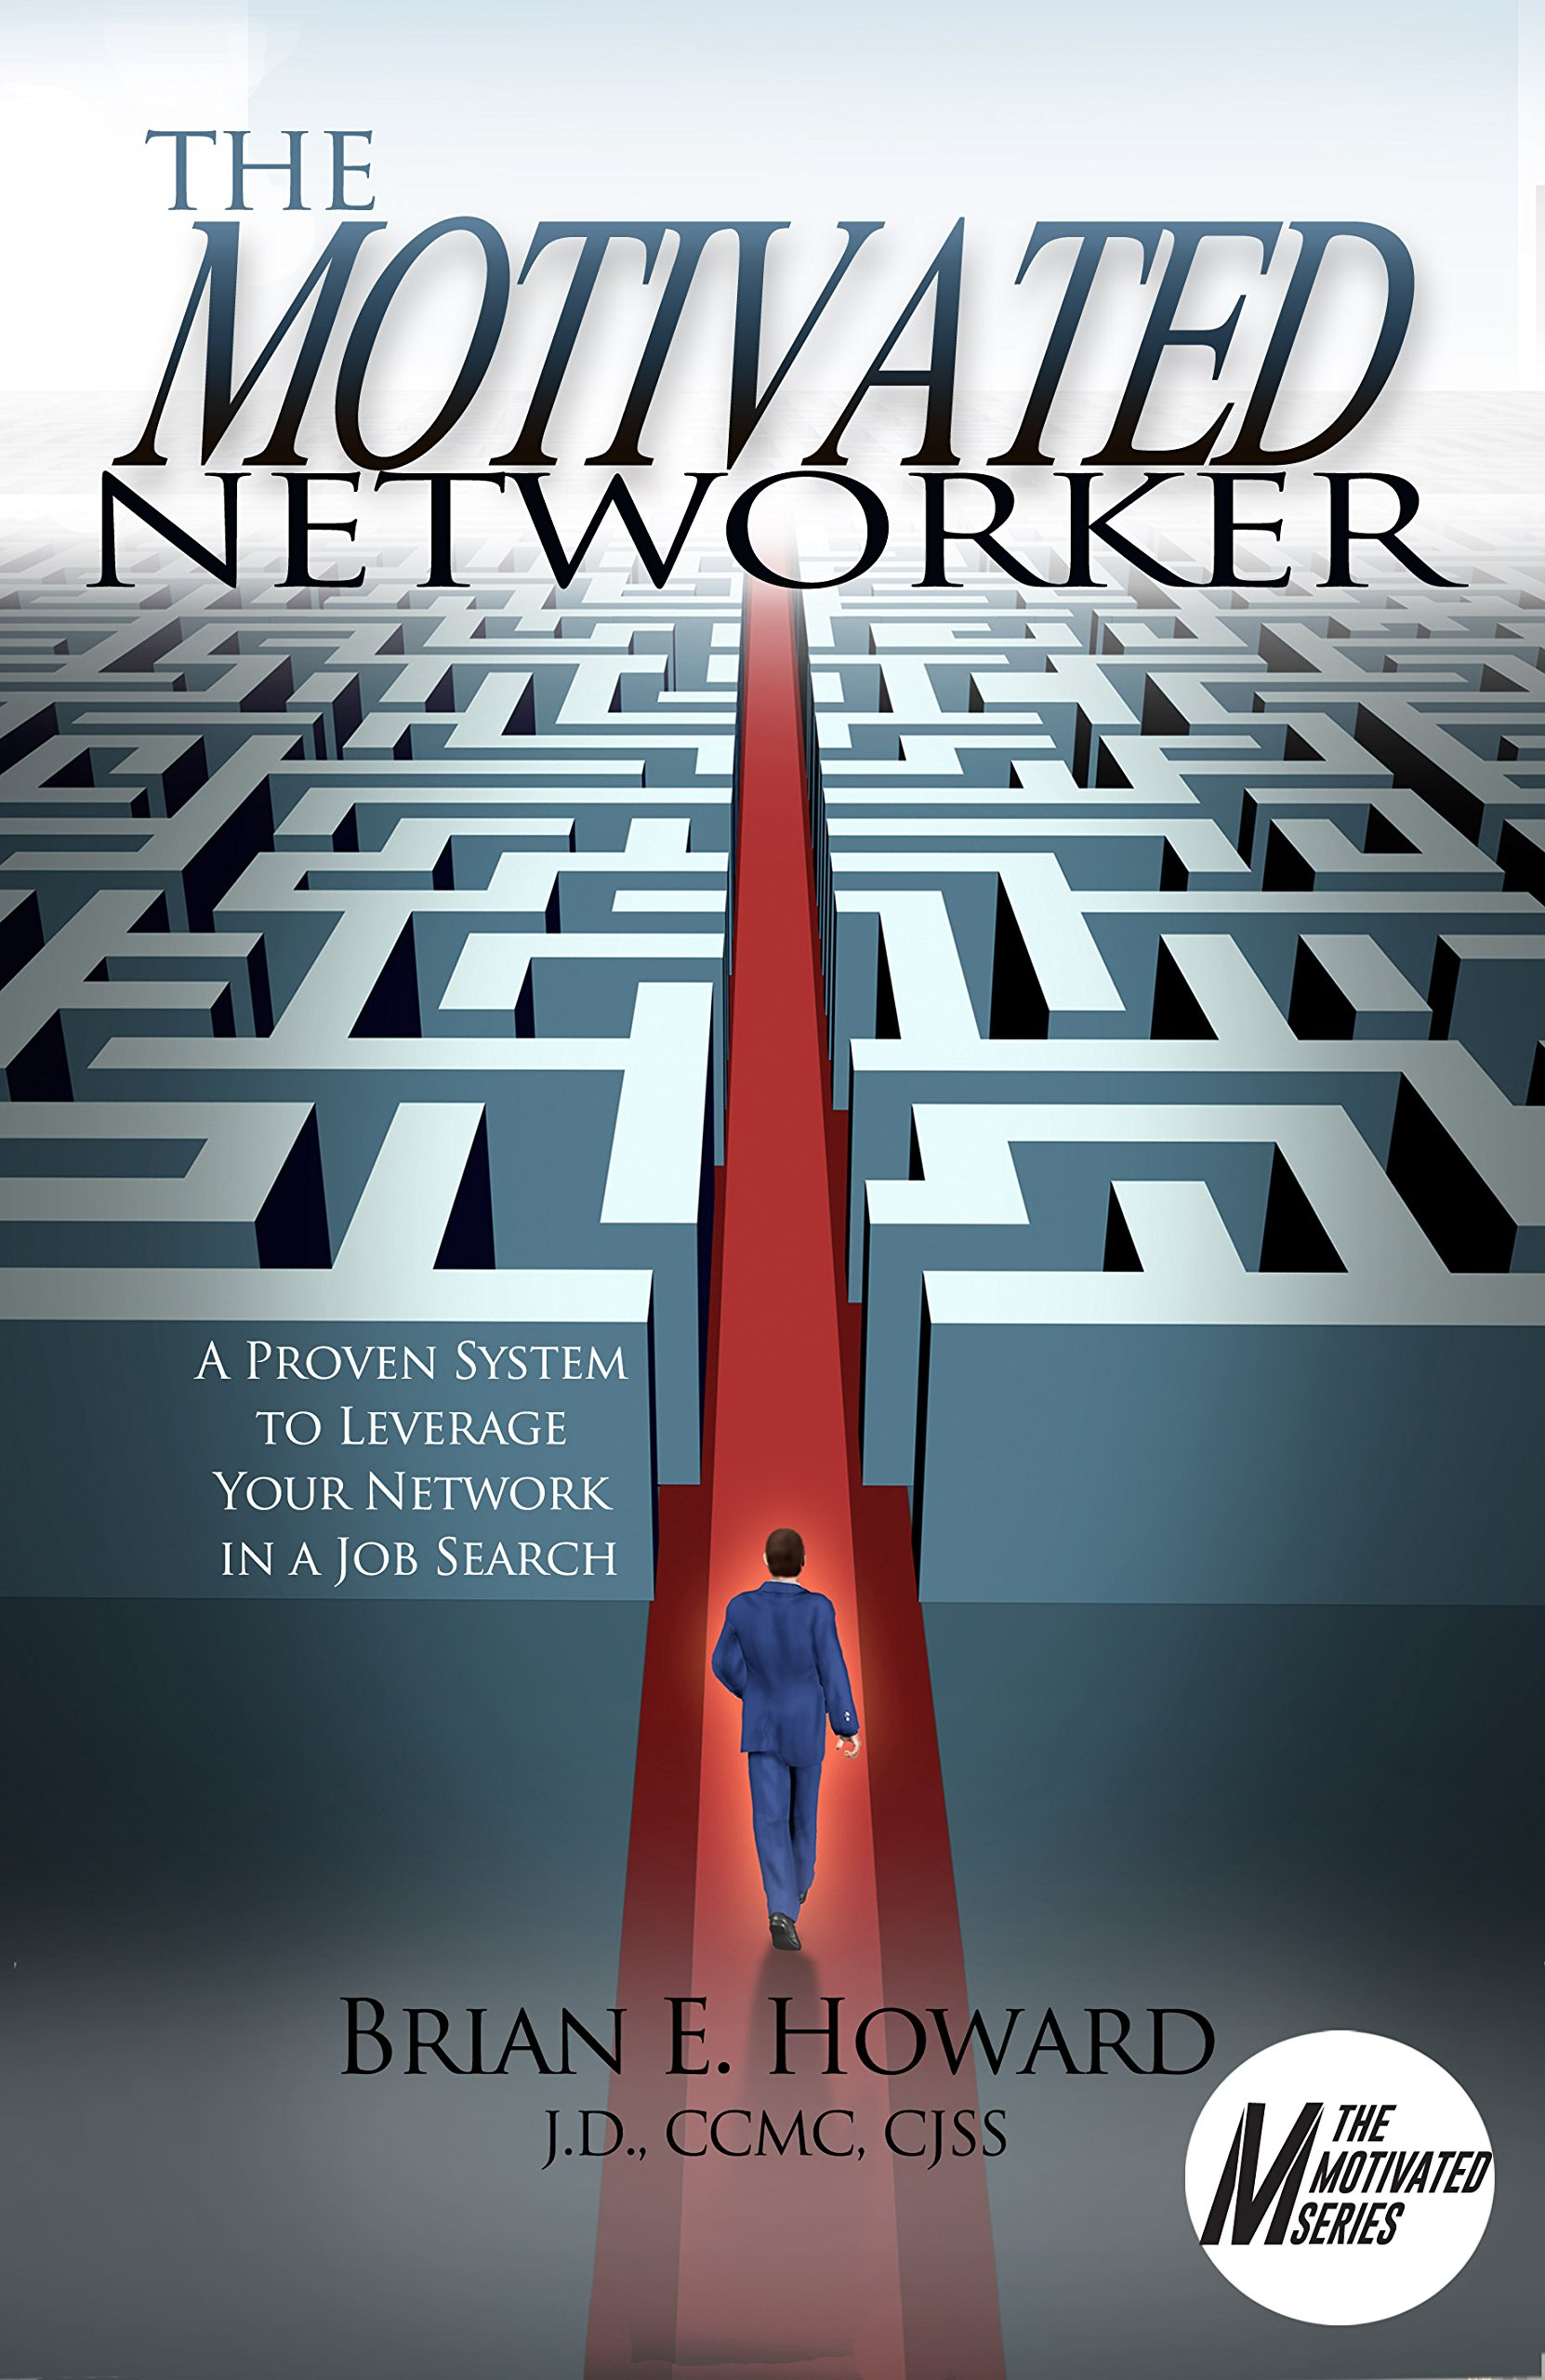 The Motivated Networker: A Proven System to Leverage Your Network in a Job Search (Motivated Series Book 2)